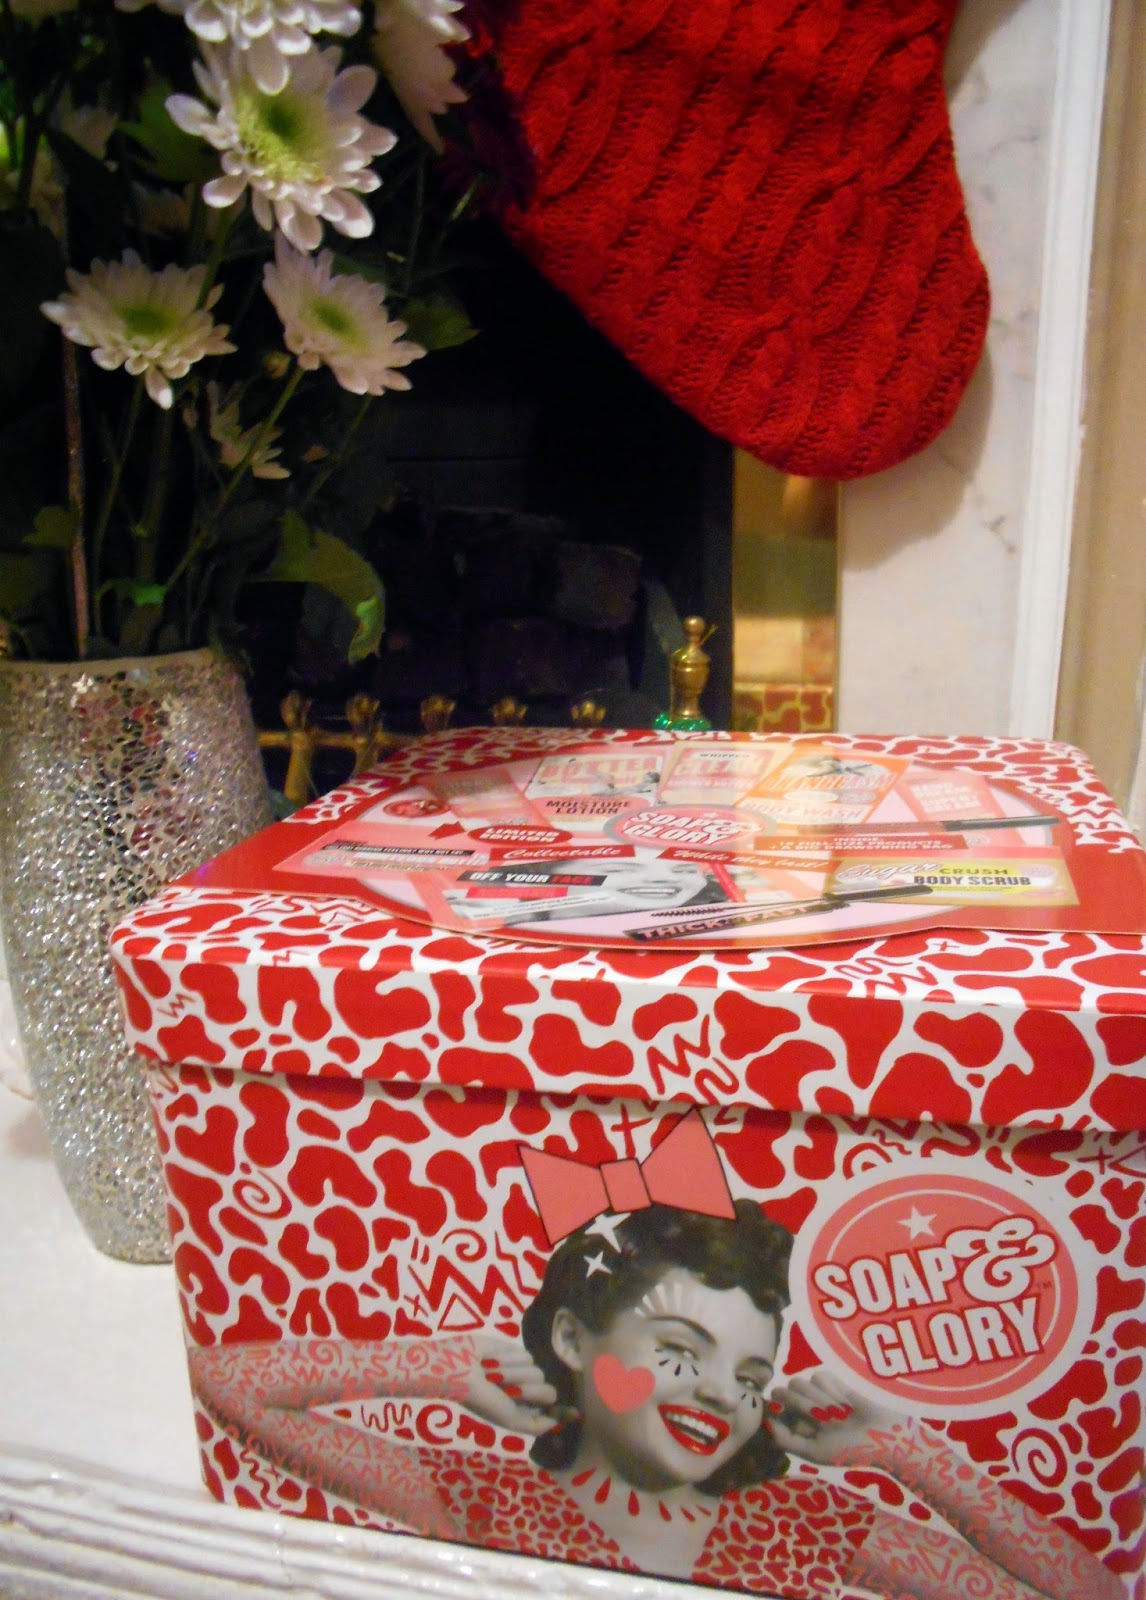 Soap & Glory - The Next Big Thing